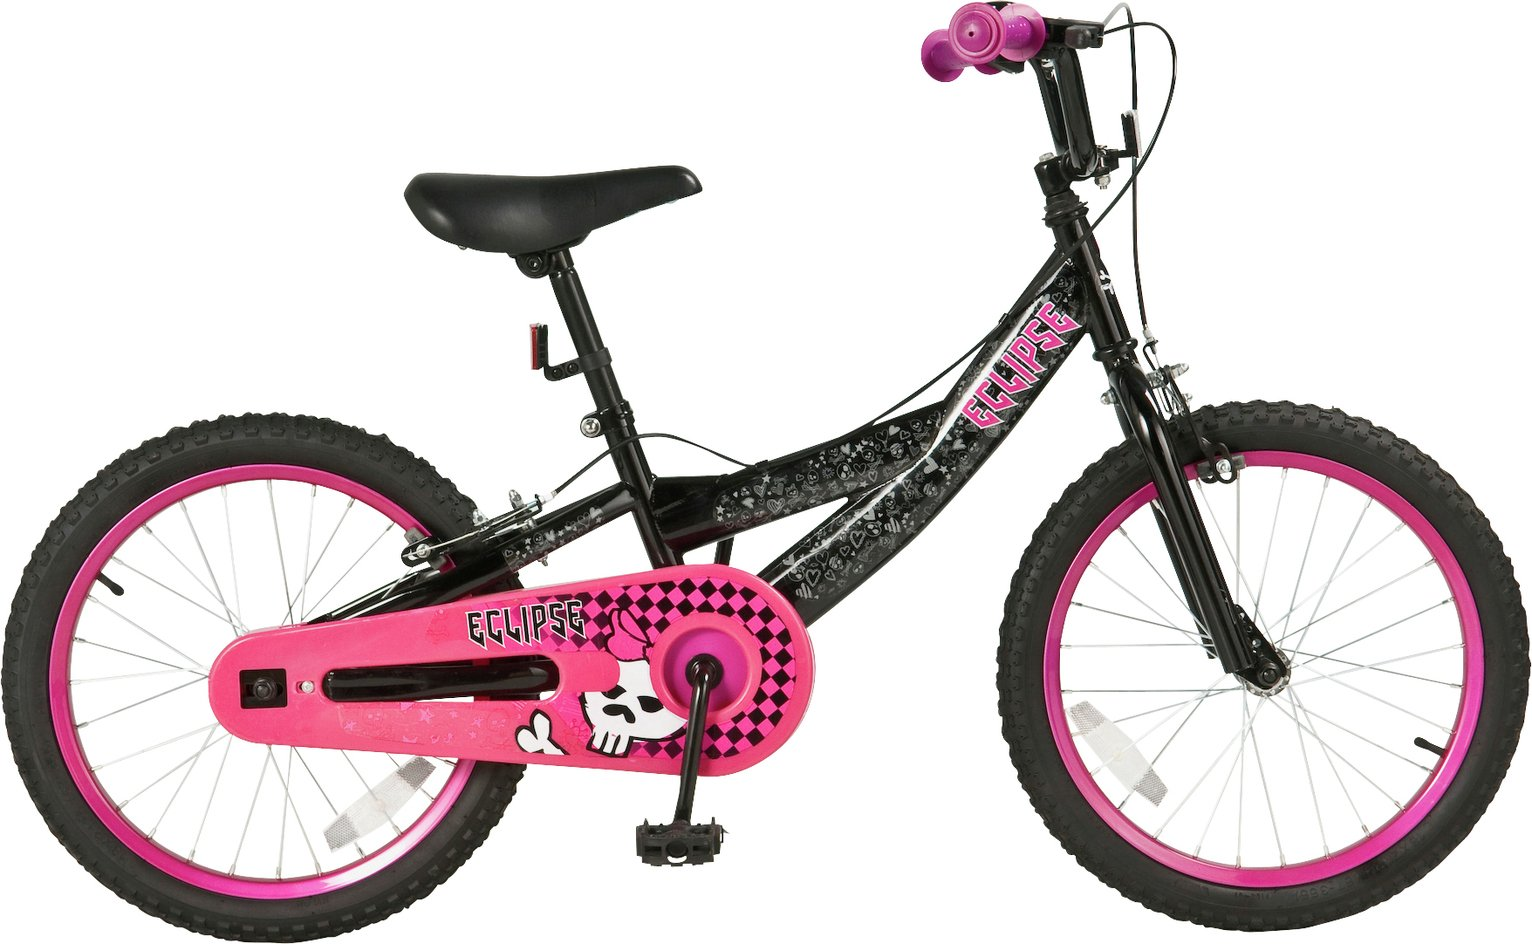 Eclipse 18 Inch Kids Bike